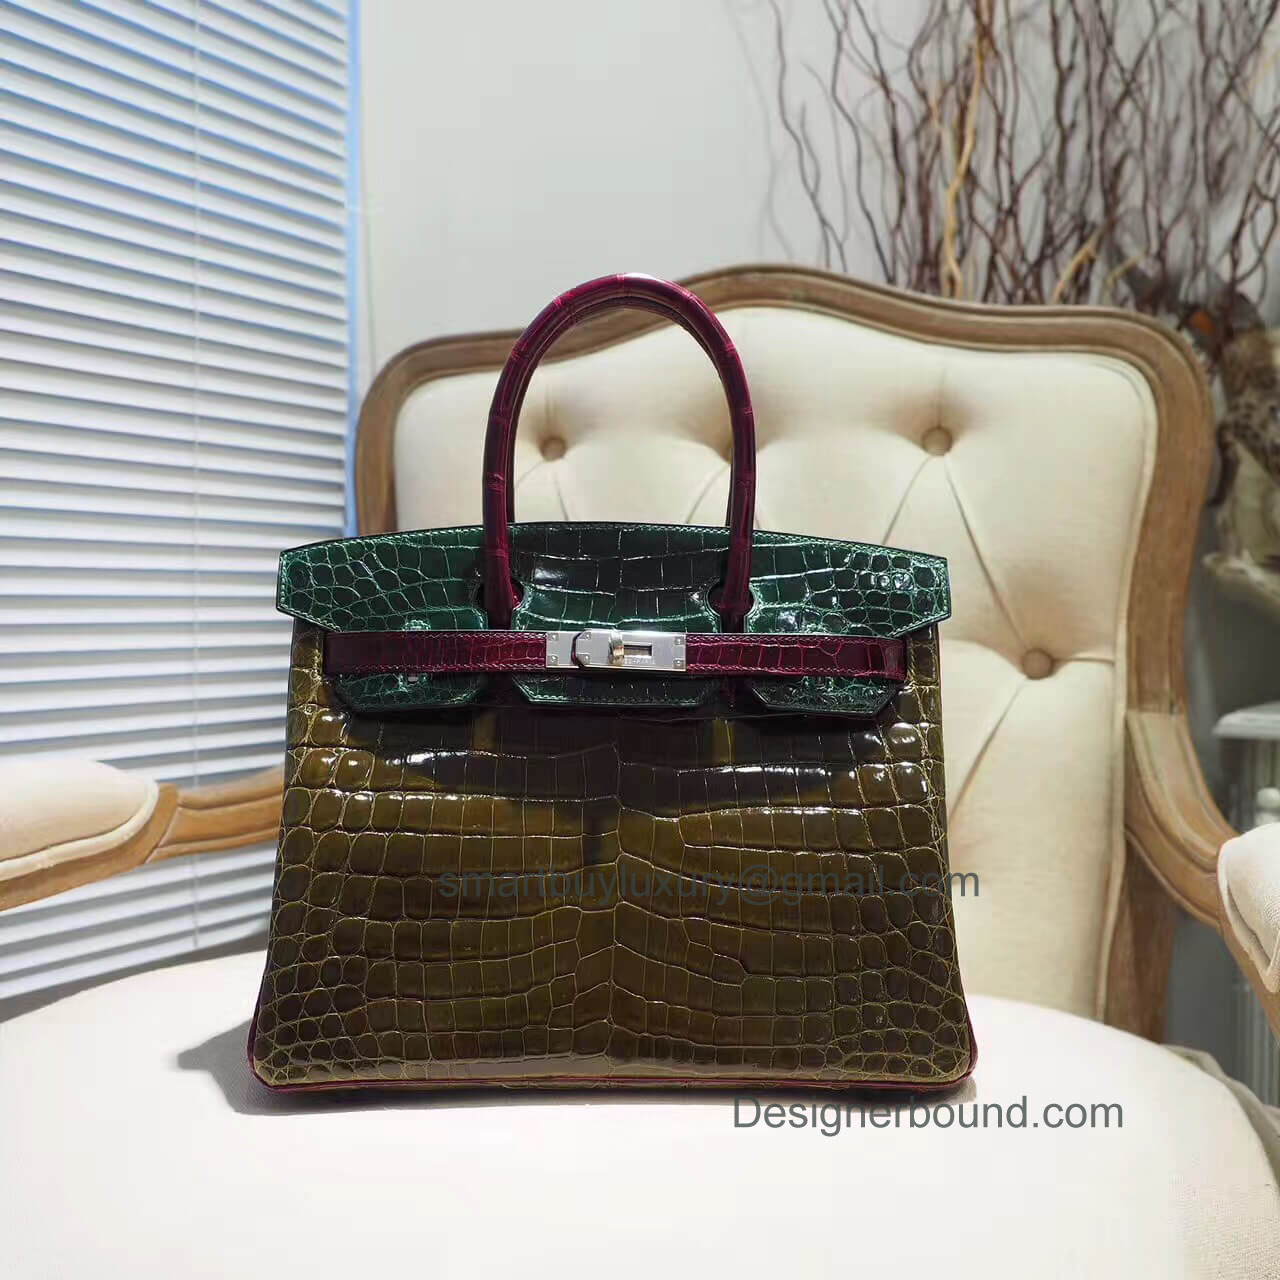 Hermes Birkin 30 Bag in Tricolored Vert Fonce Shiny Nile Croc PHW